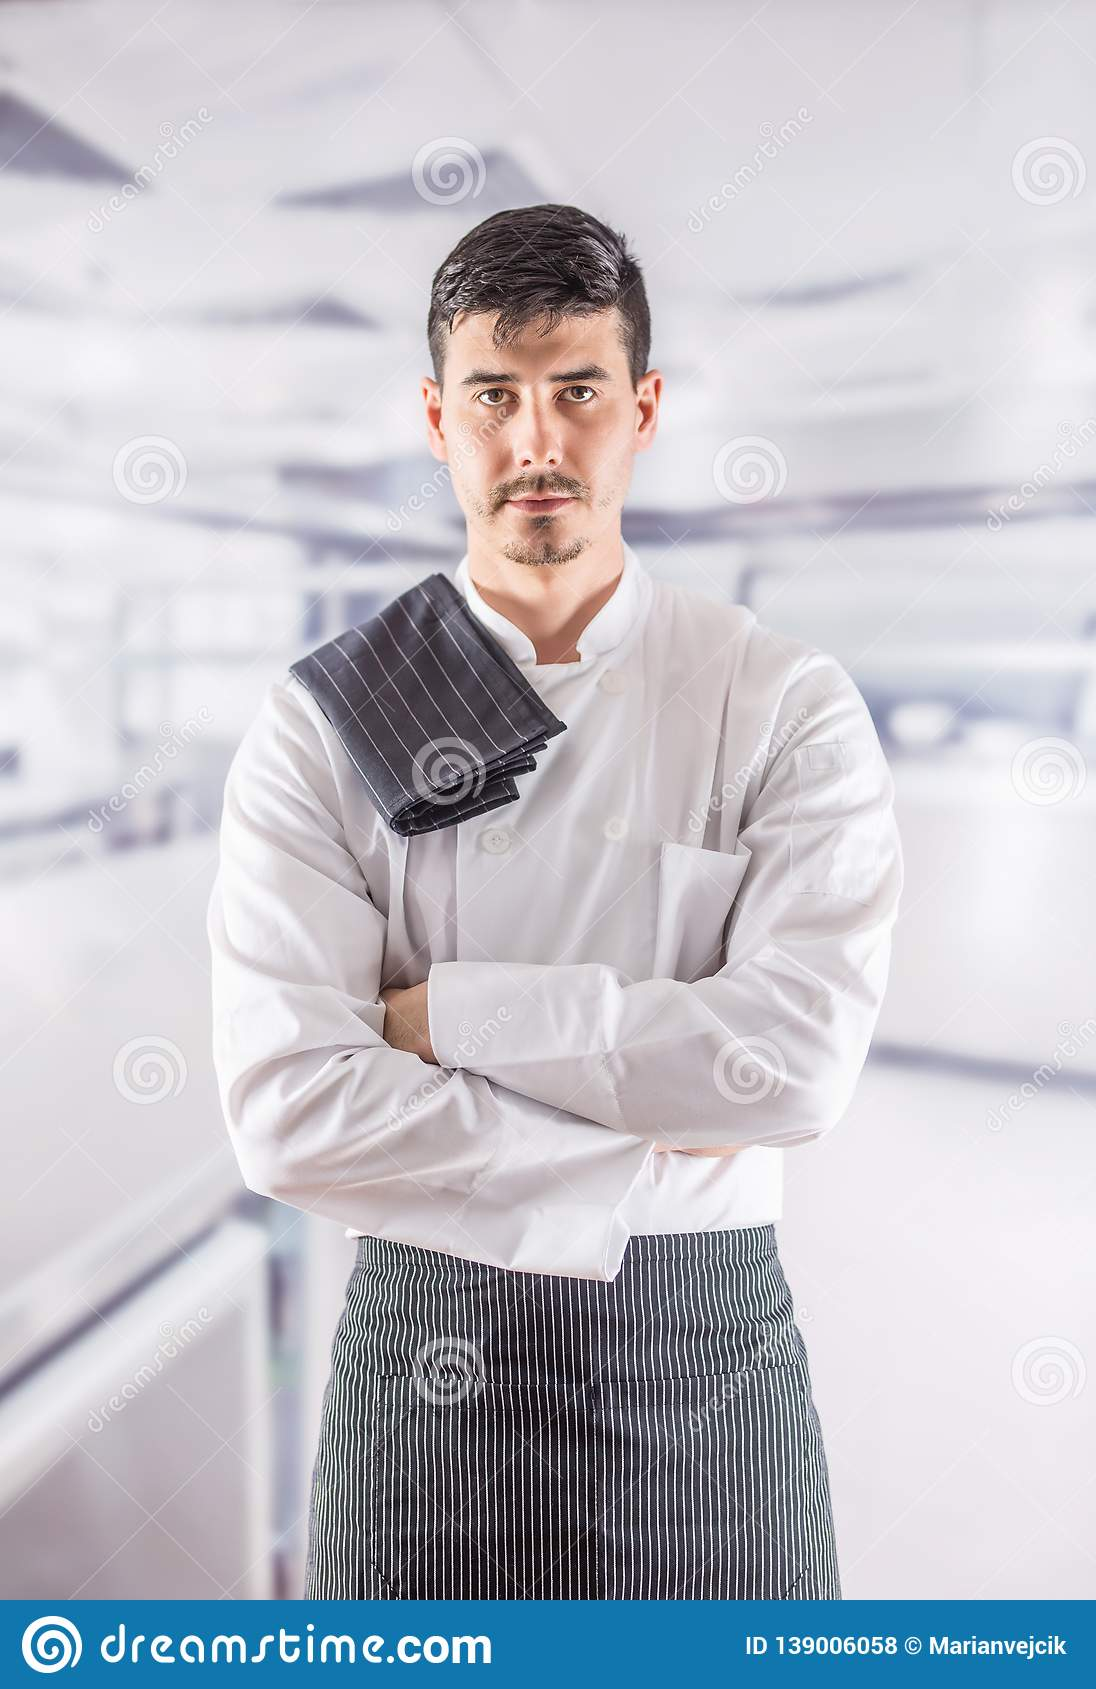 Chef professional in restaurant kitchen standing with towel on shoulder